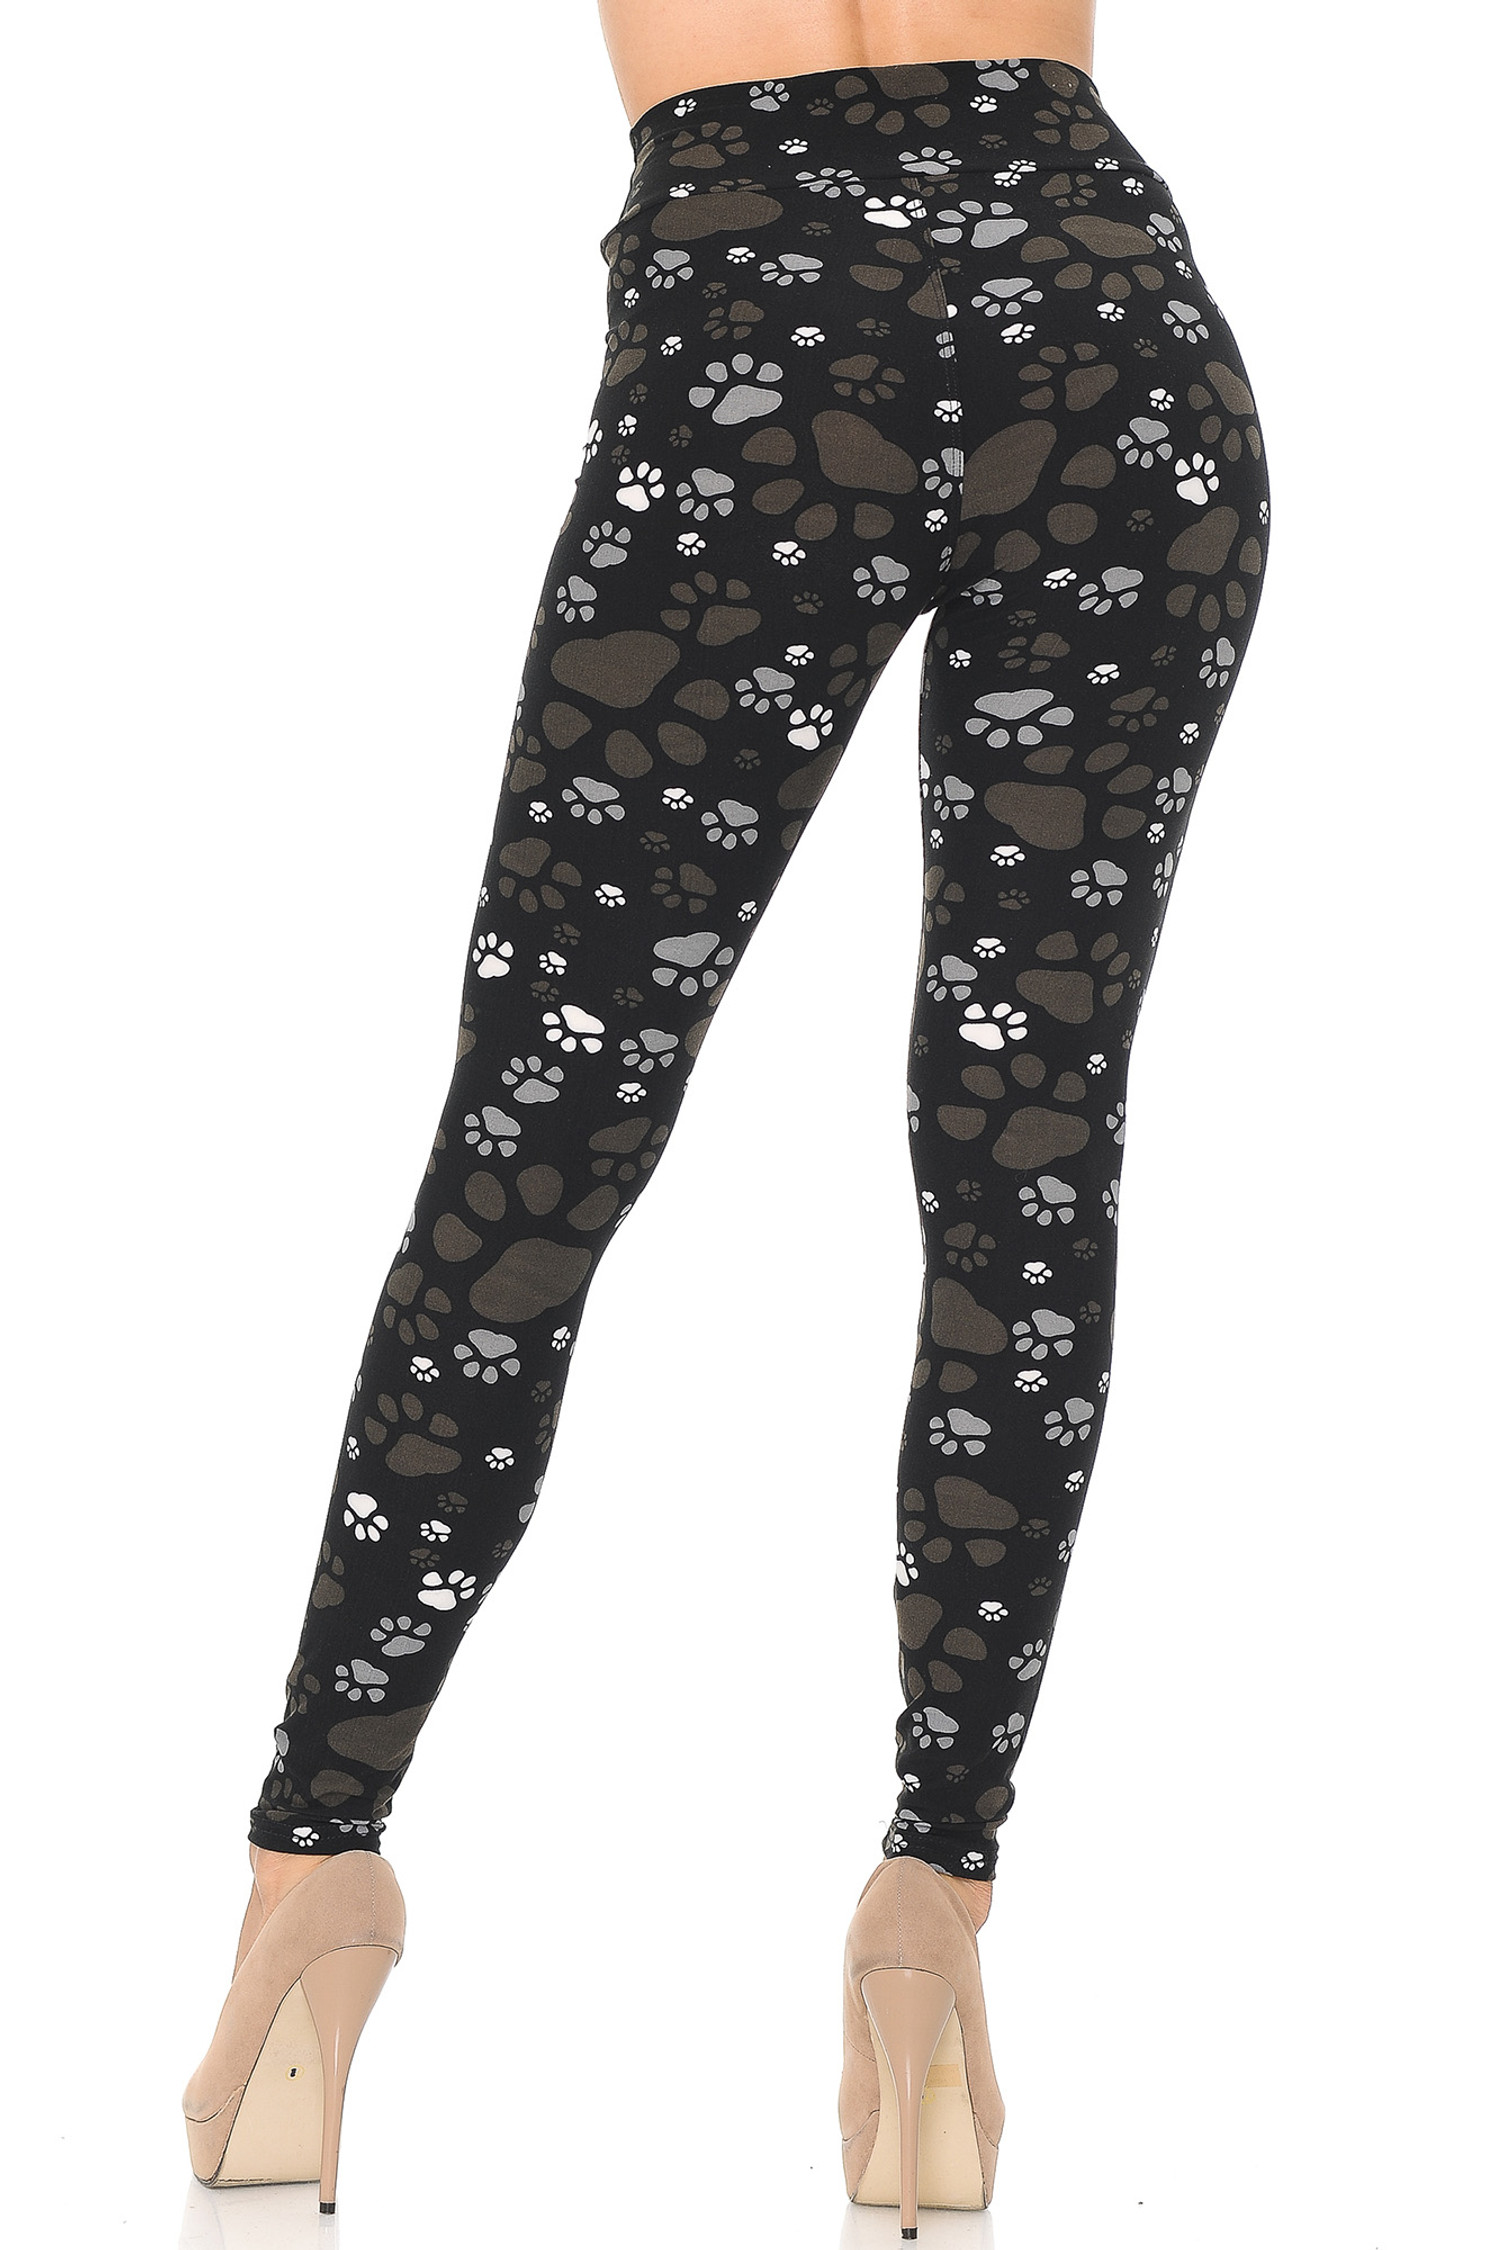 Soft Brushed Muddy Paw Print High Waisted Leggings - USA Fashion